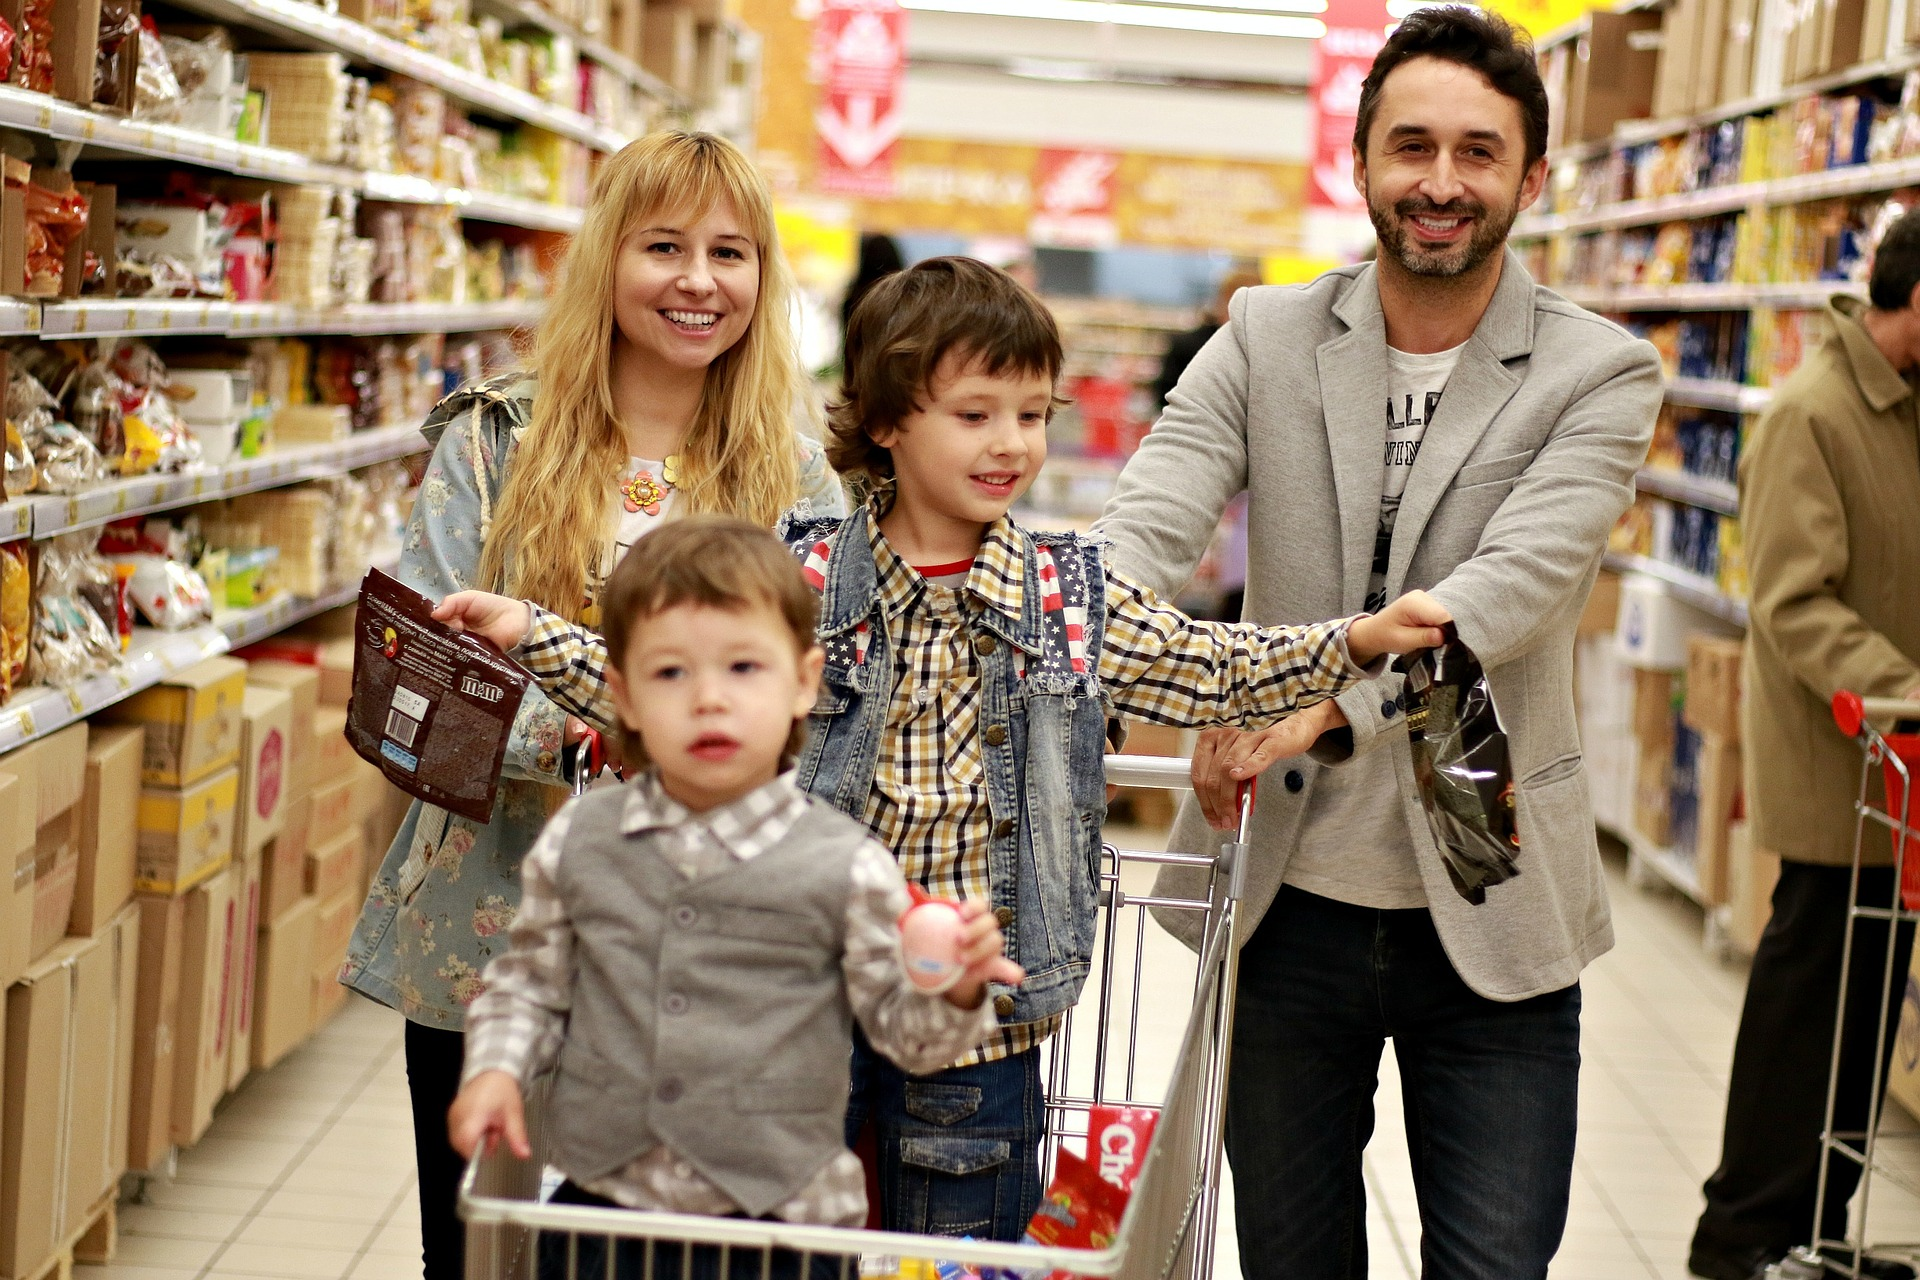 Save-On-Foods dim lighting to accommodate autistic kids could be coming to Surrey